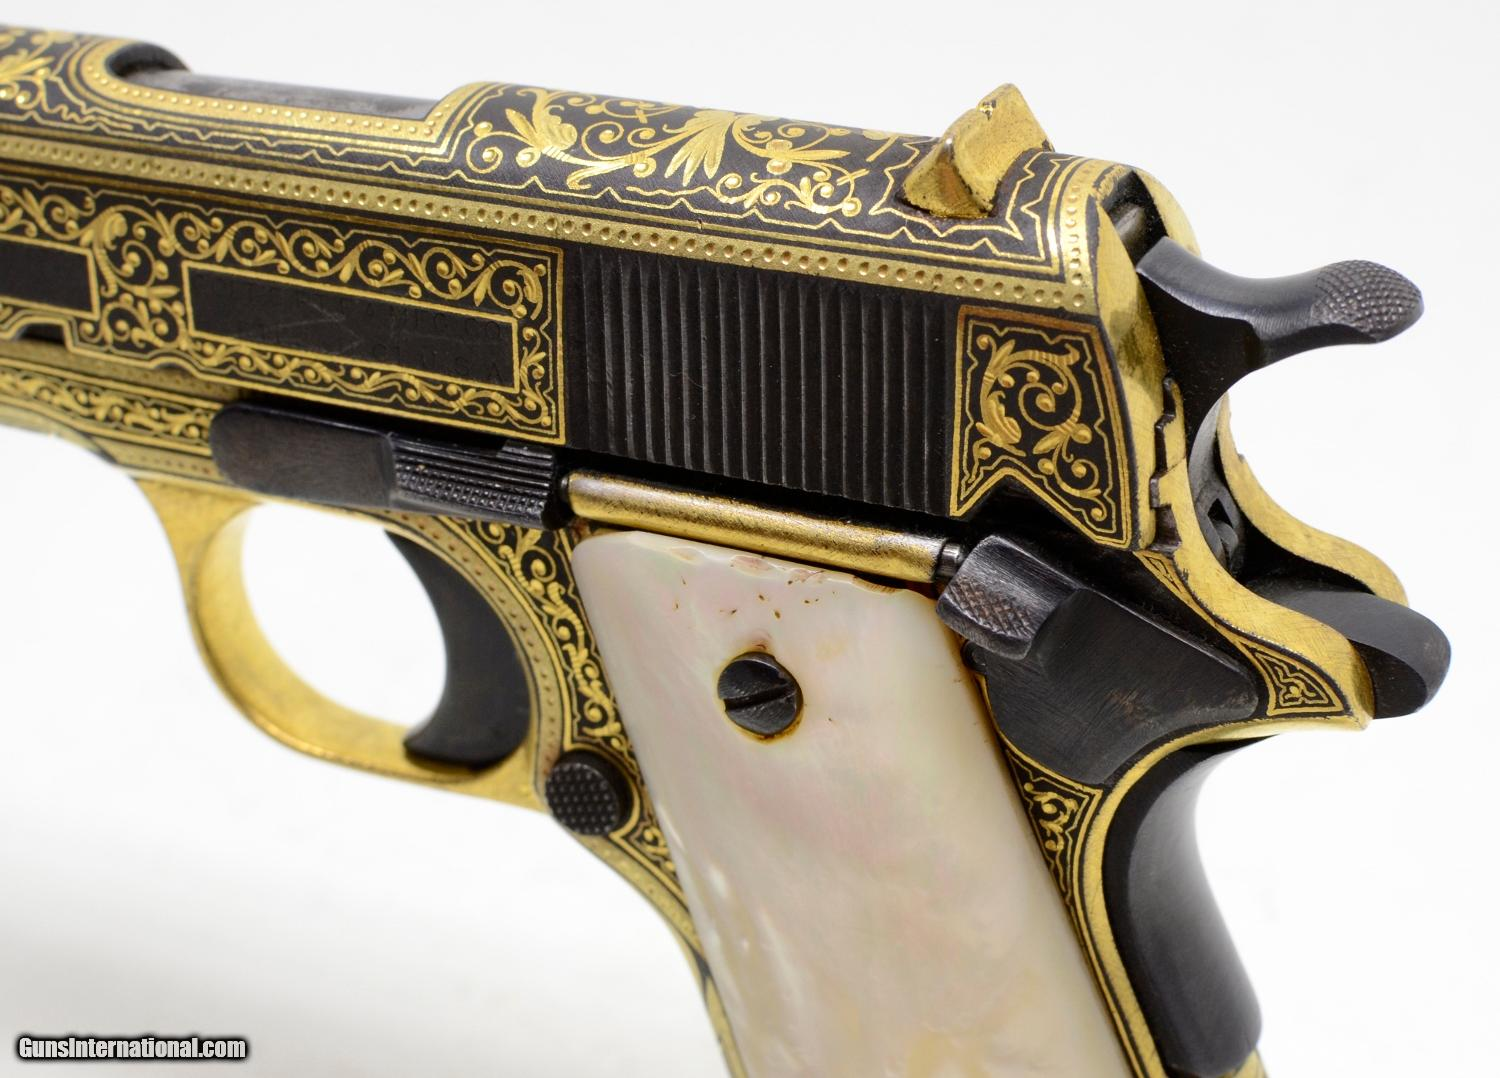 Colt 1911 45 ACP  Engraved And Damascened Gold On Black